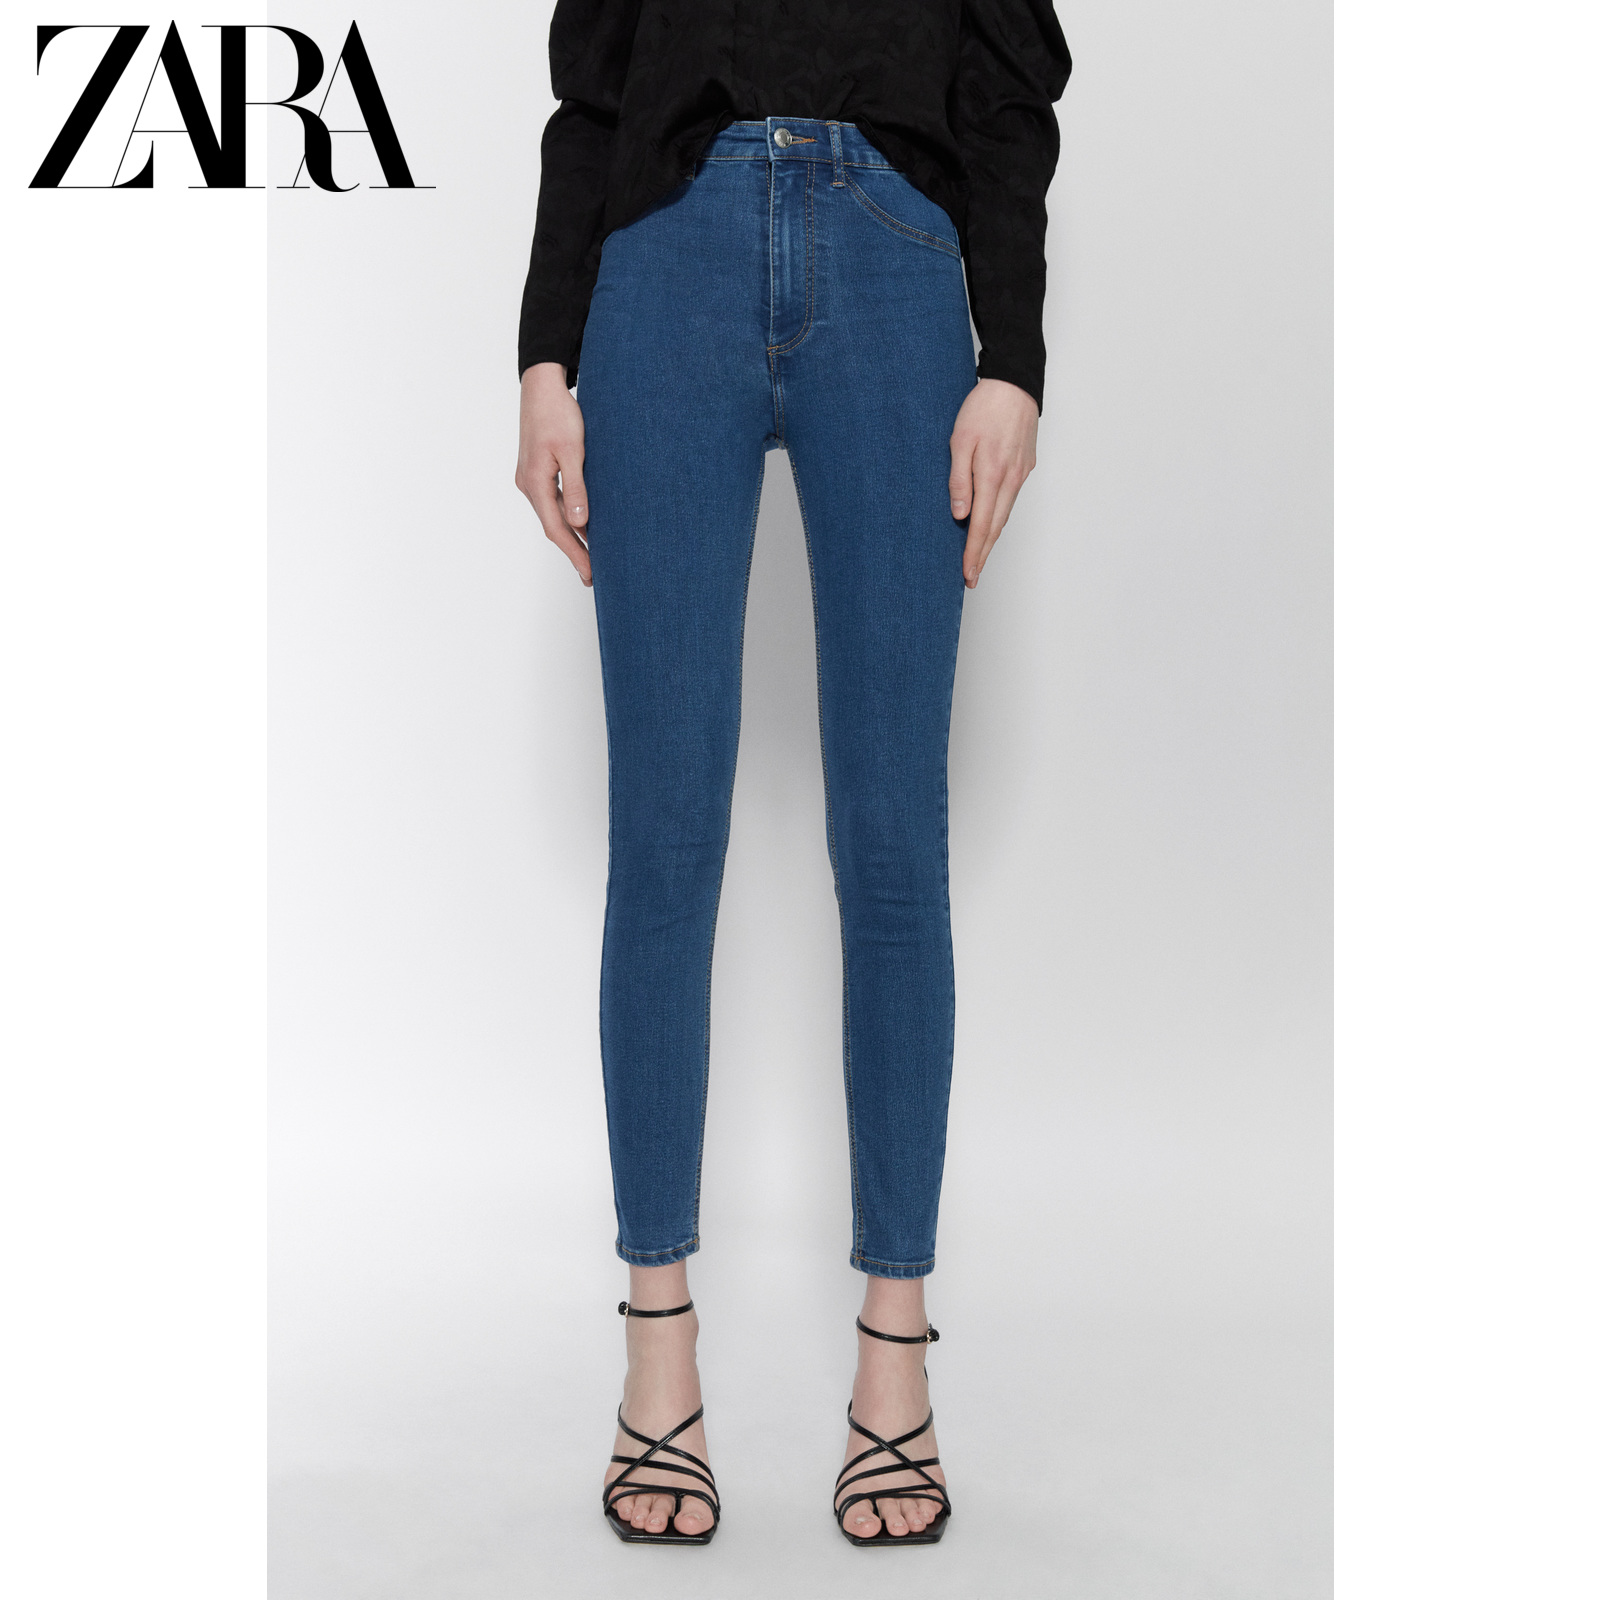 Zara new TRF women's super elastic high waist skinny jeans 08197003400